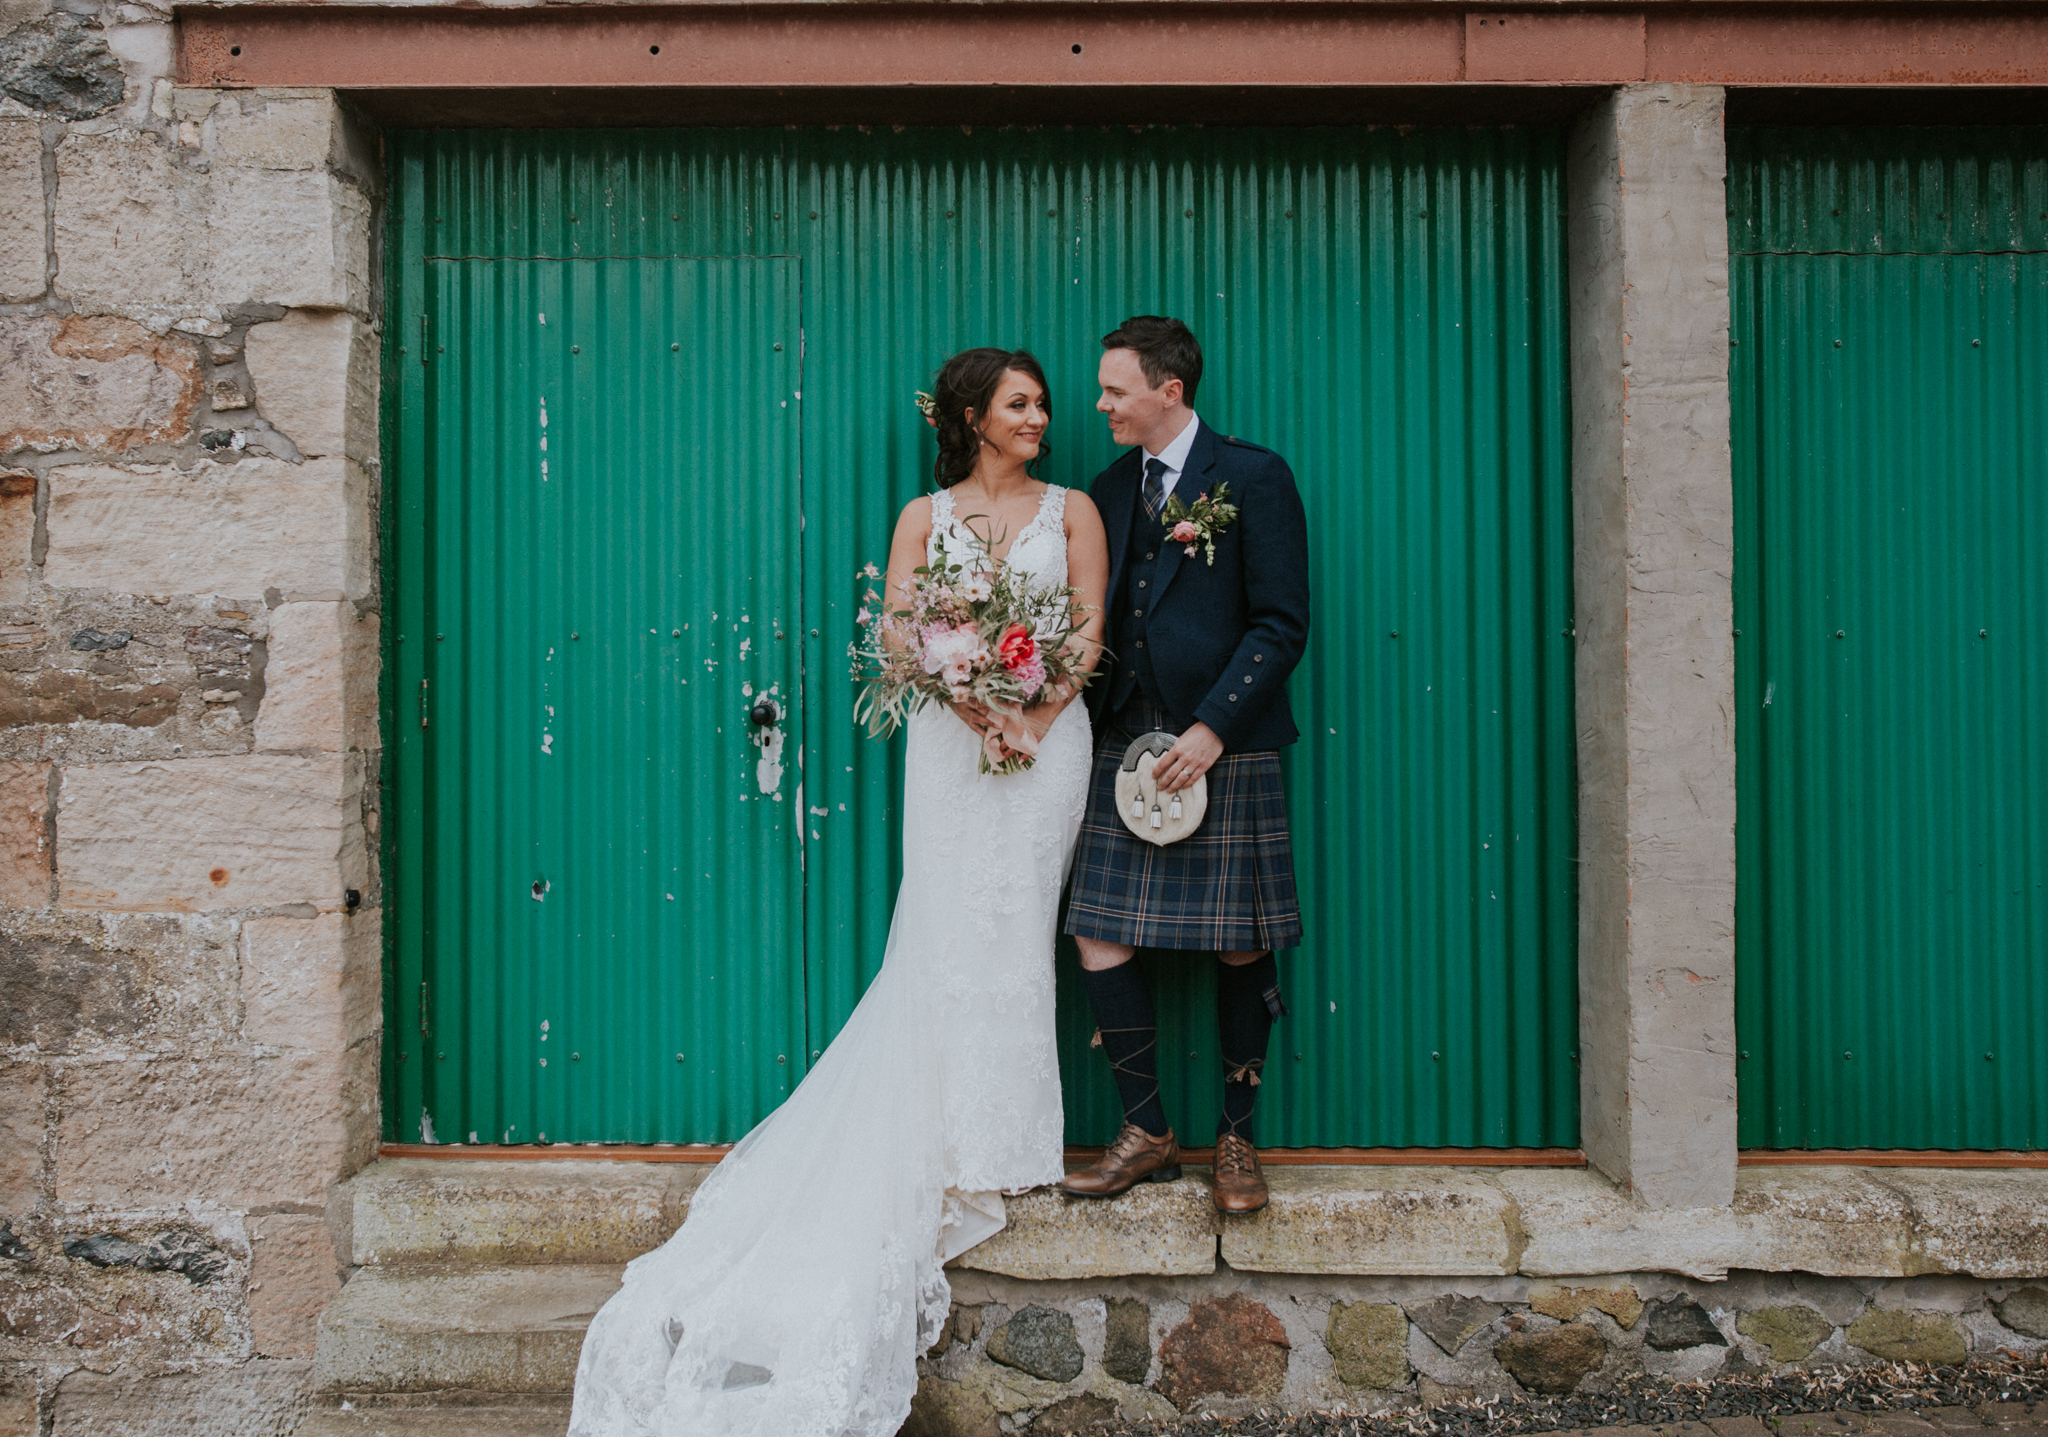 Creative wedding photographer in Glasgow, Scotland